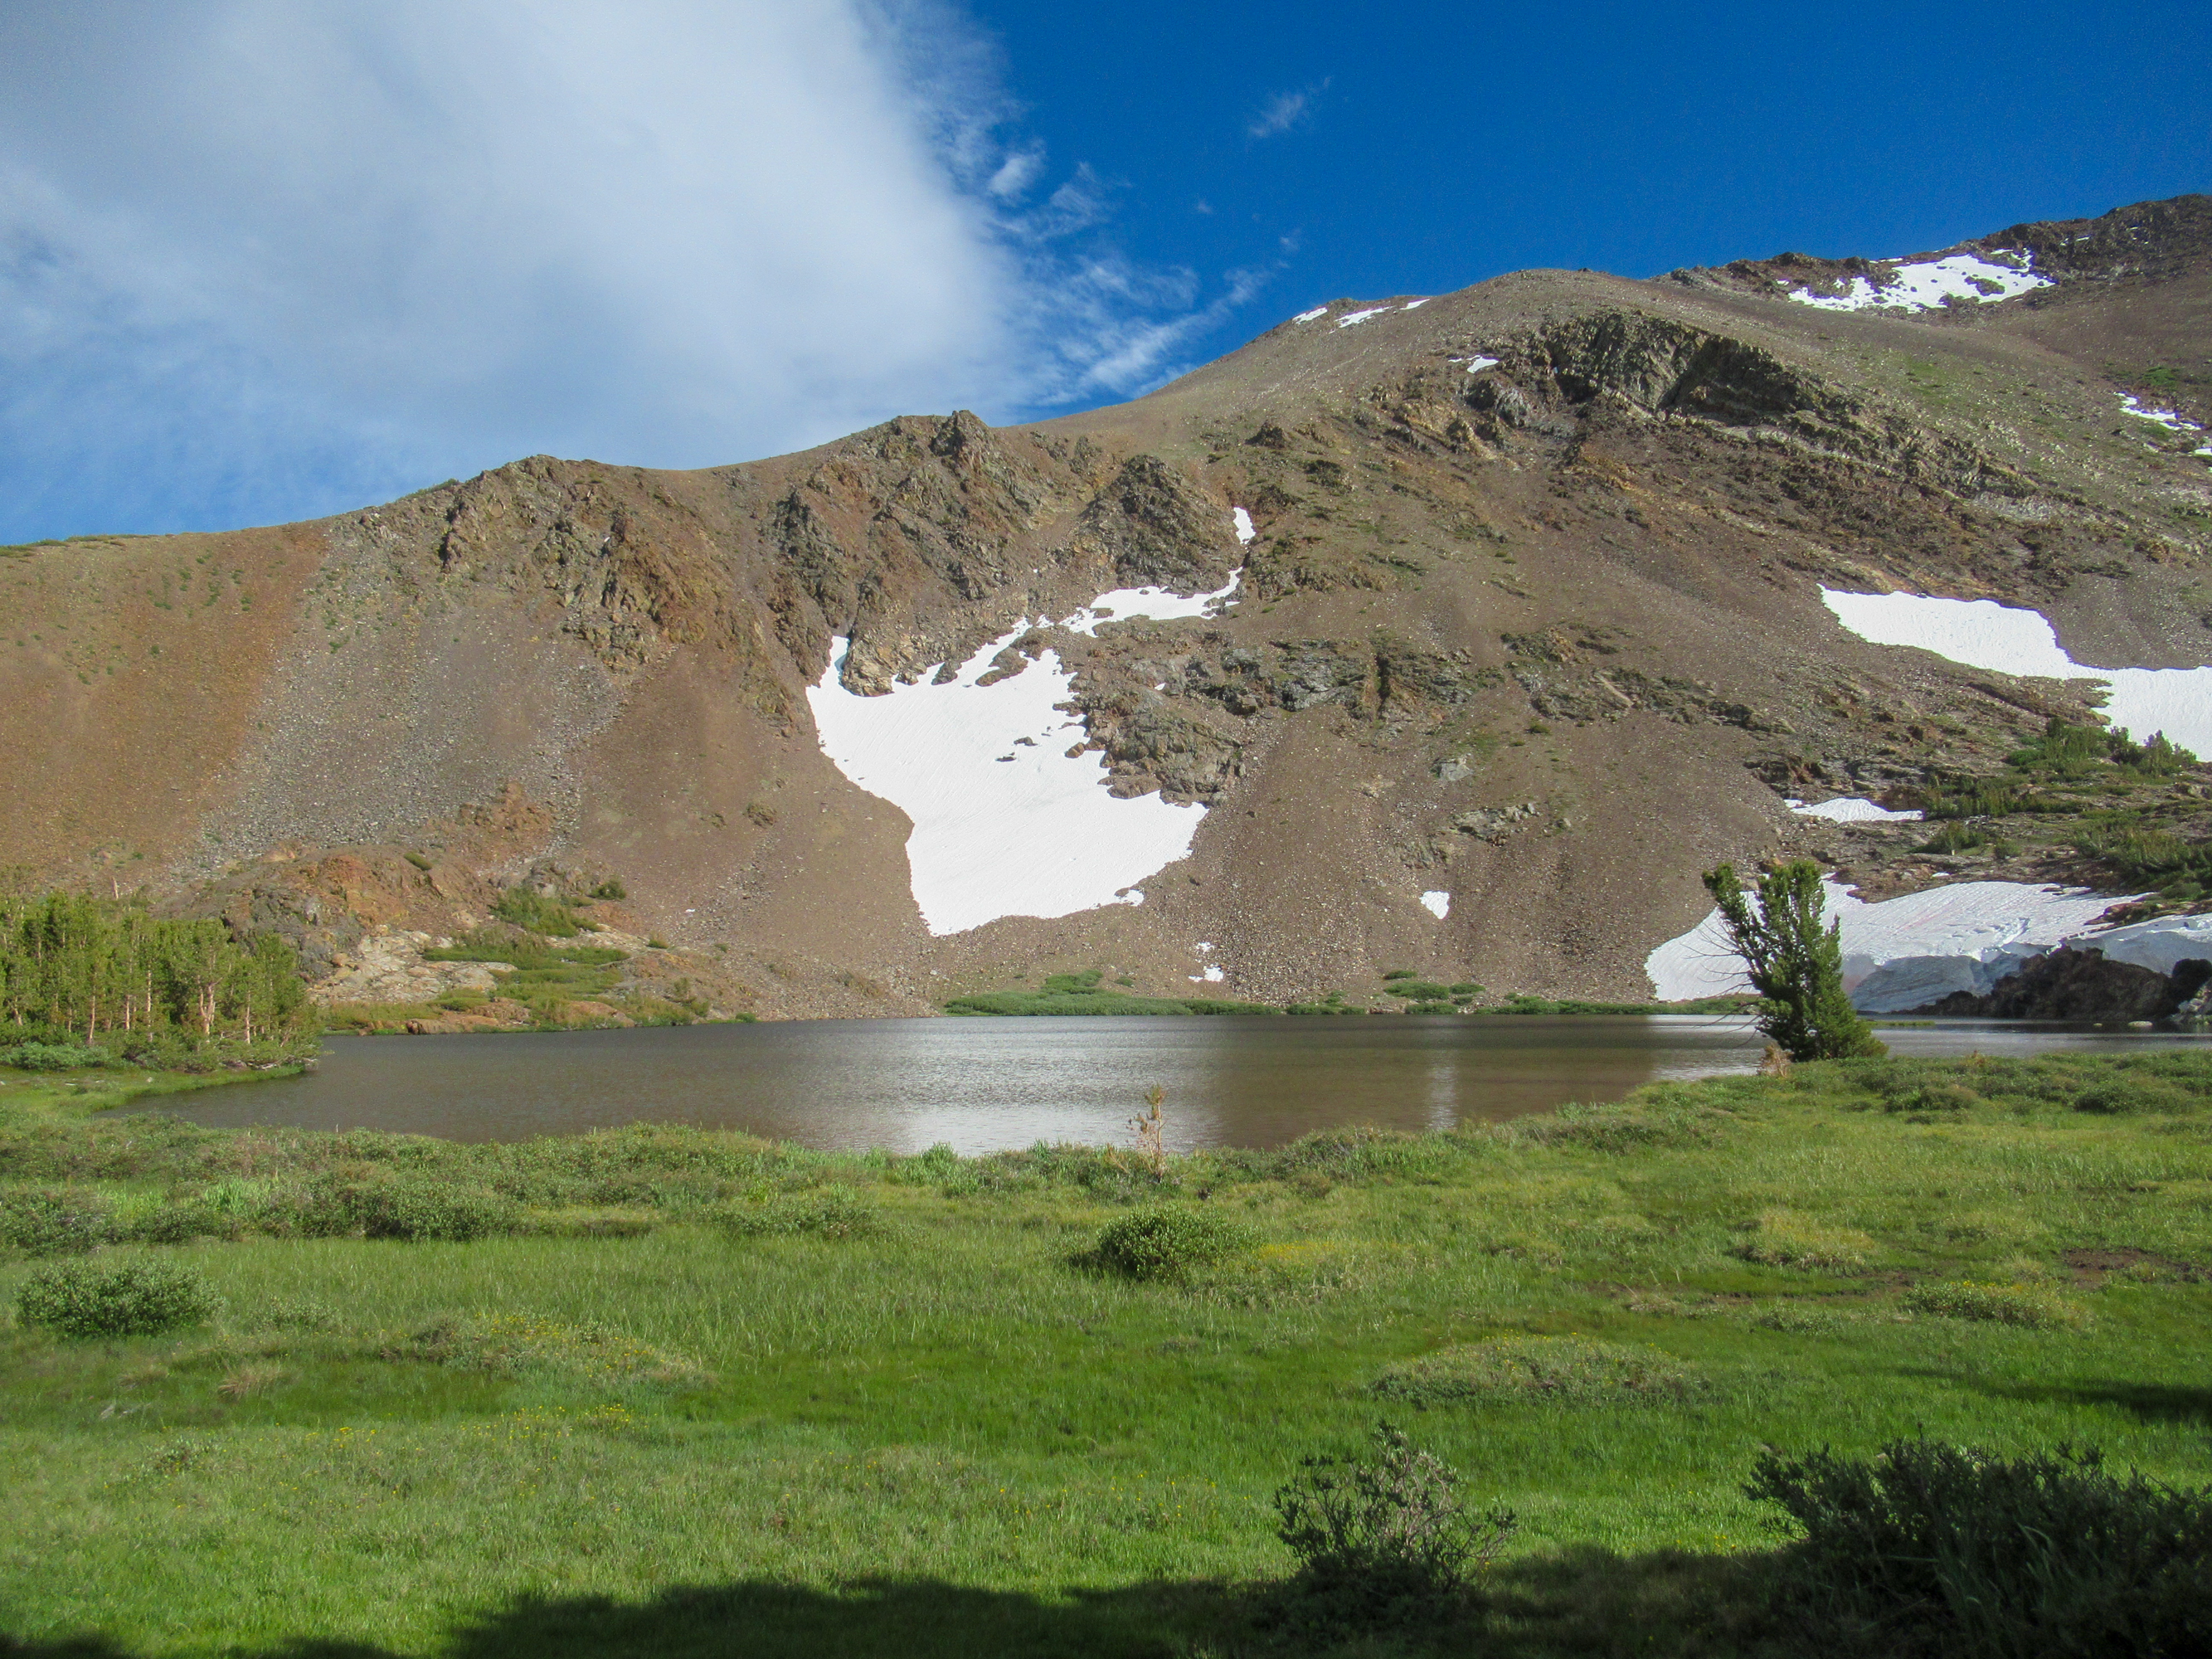 Upper Sardine Lake just over Mono Pass.